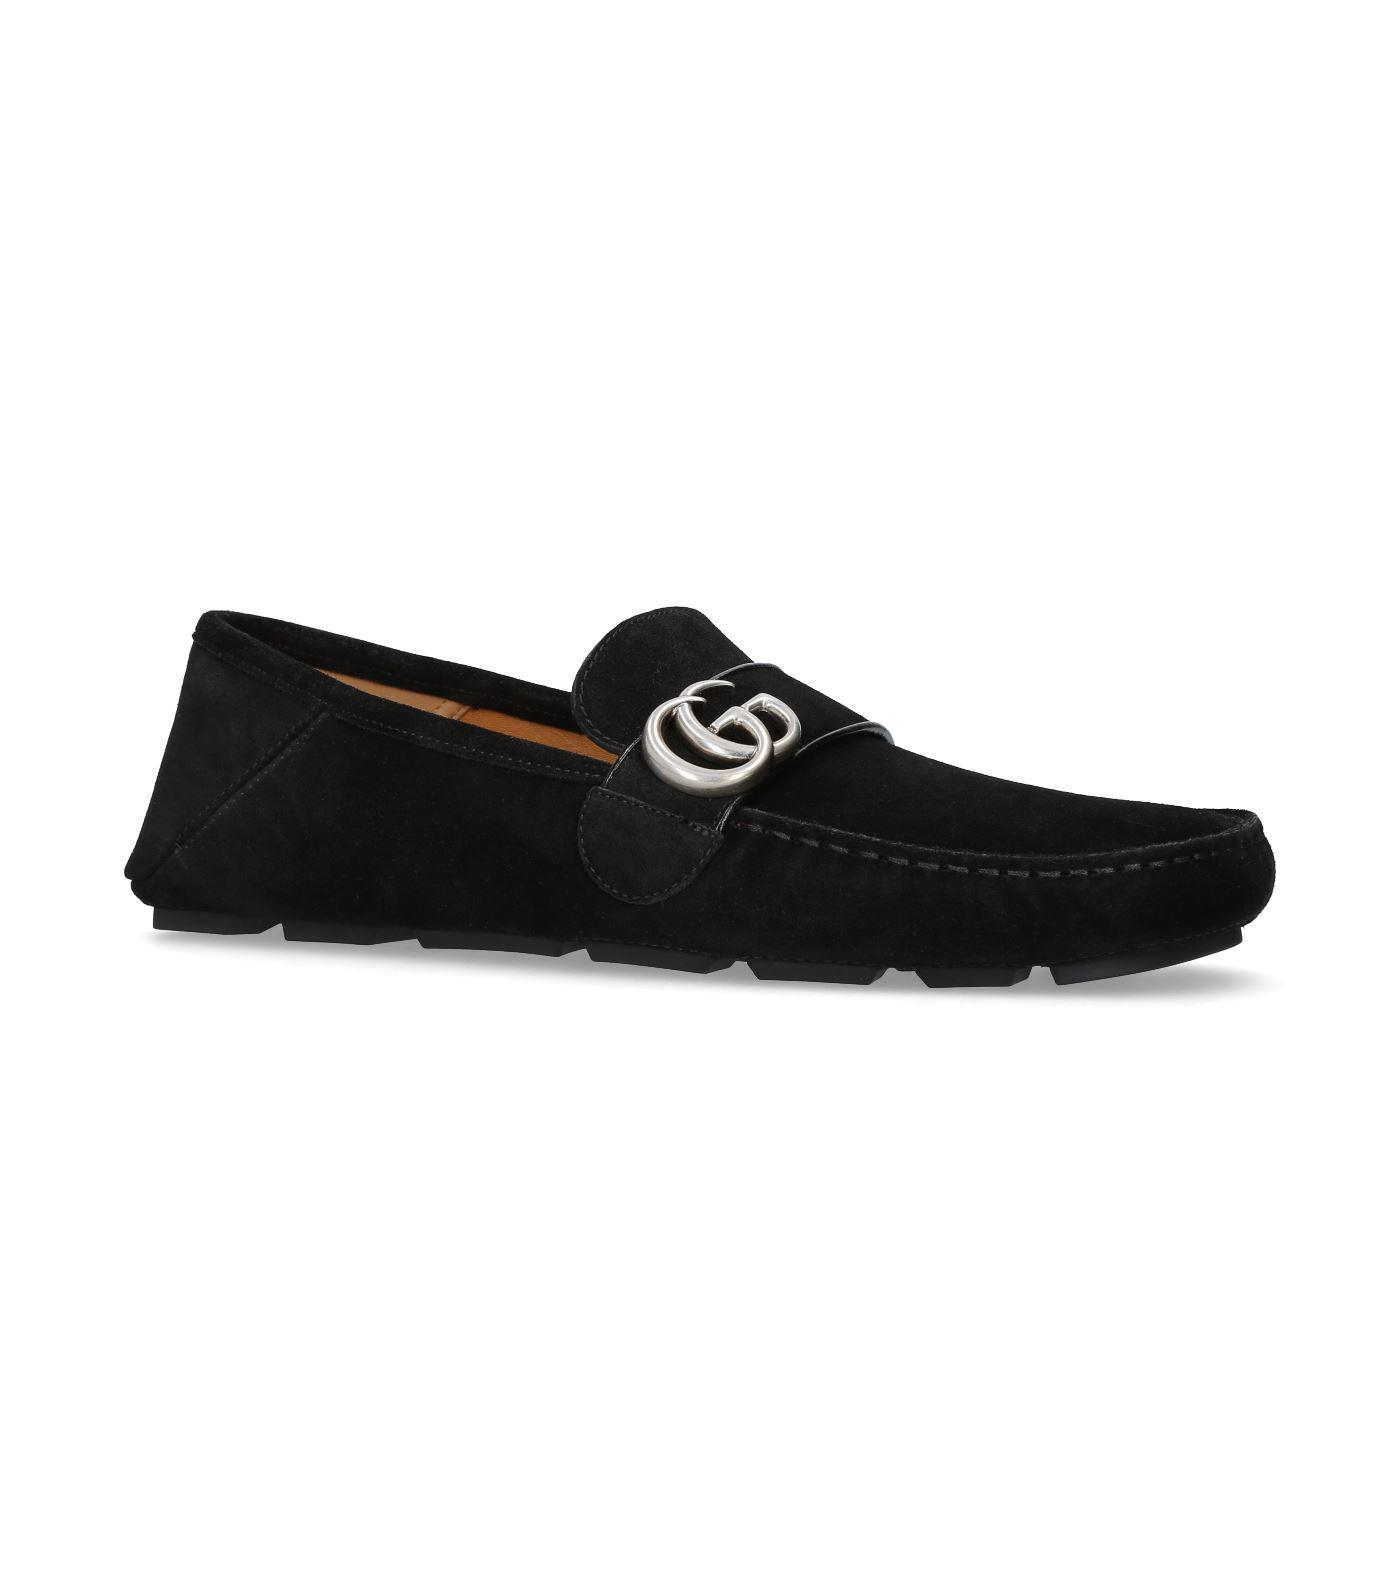 Gucci Noel Suede Driving Loafers in